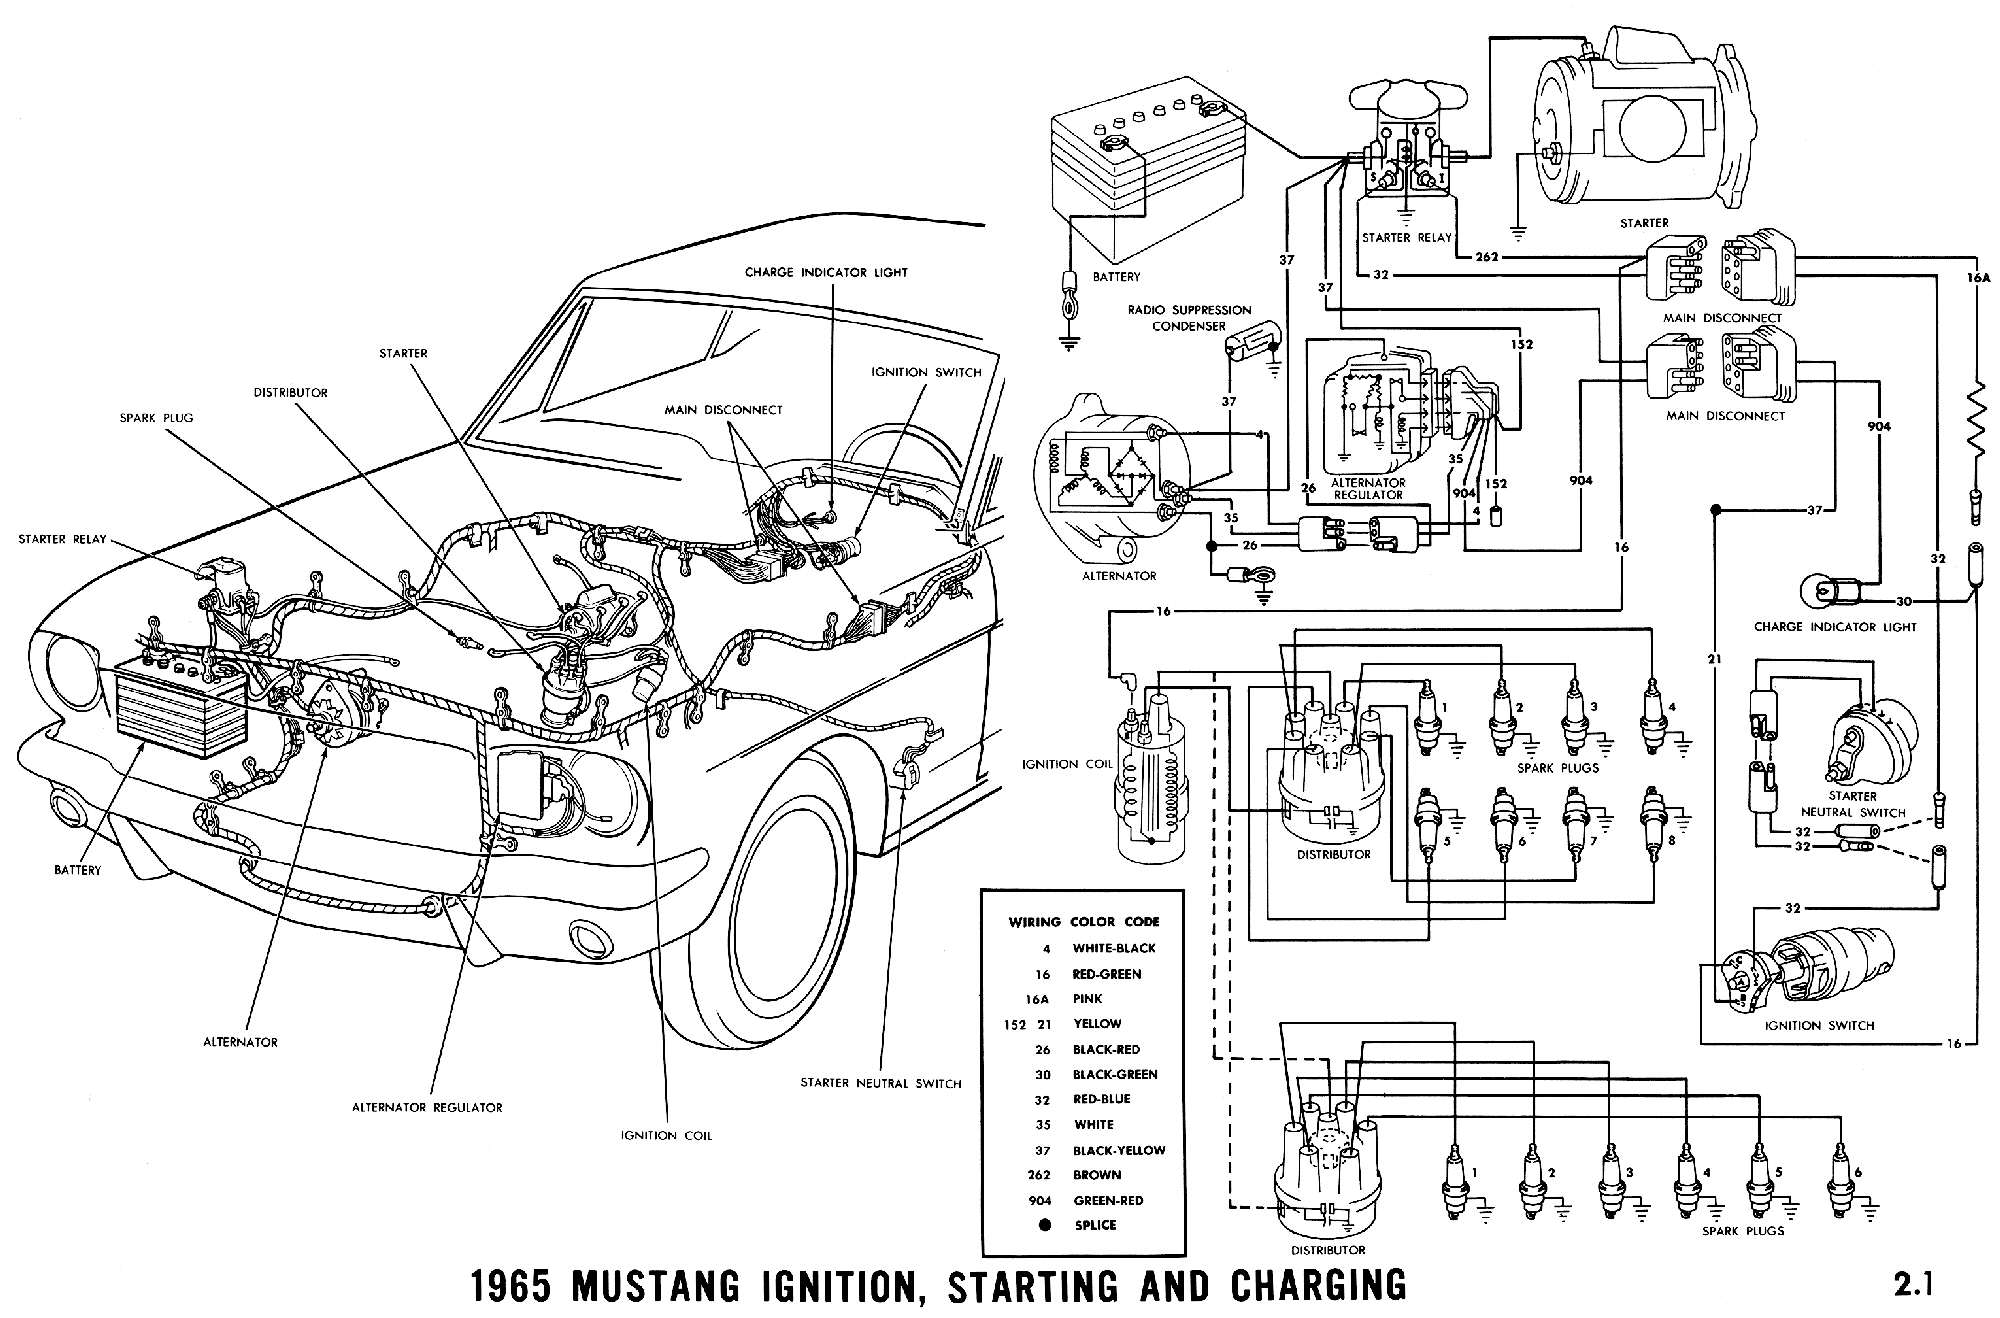 1965 Ford Mustang Starter Relay Wiring Diagram Best Secret F 150 Solenoid Diagrams Average Joe Restoration Hei